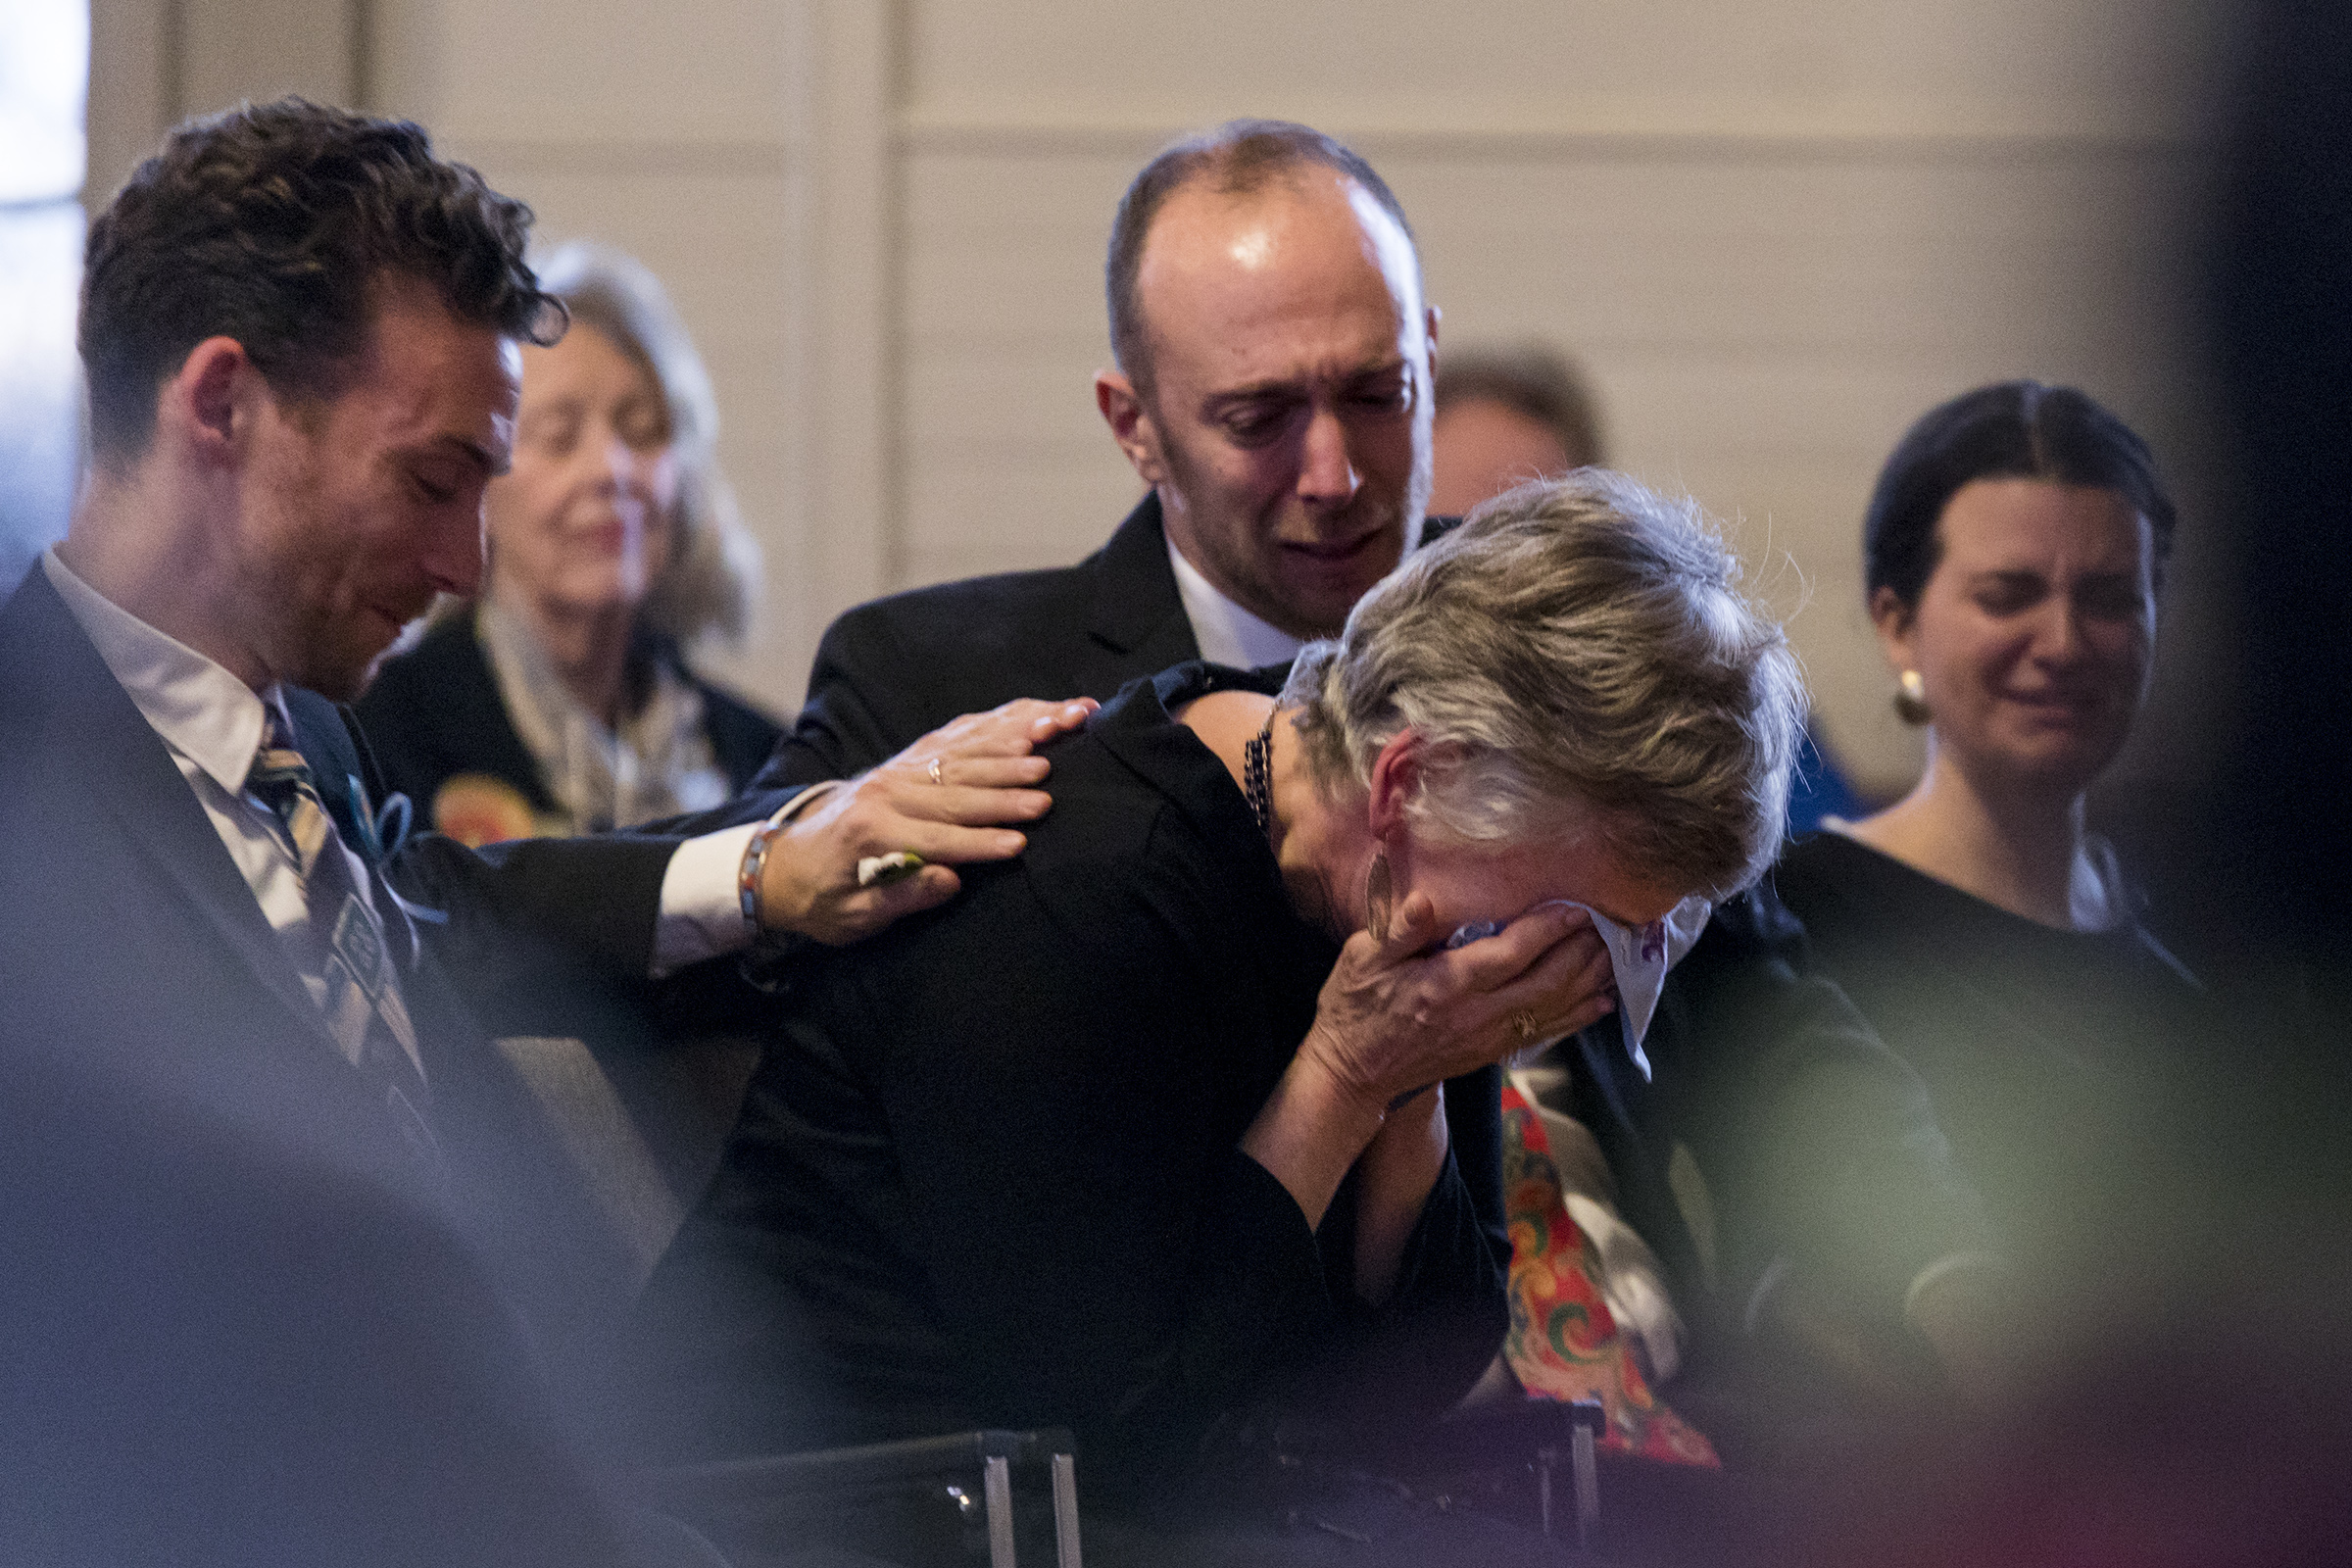 Chris Brumback reacts to hearing her husband's voice on a recorded message while her sons Stephen and Michael Wechsler comfort her during a service to celebrate Bill Wechsler's life at Holliston Town Hall on Nov. 29, 2018. Beloved social worker Wechsler passed away after a nearly three-year battle against ALS.